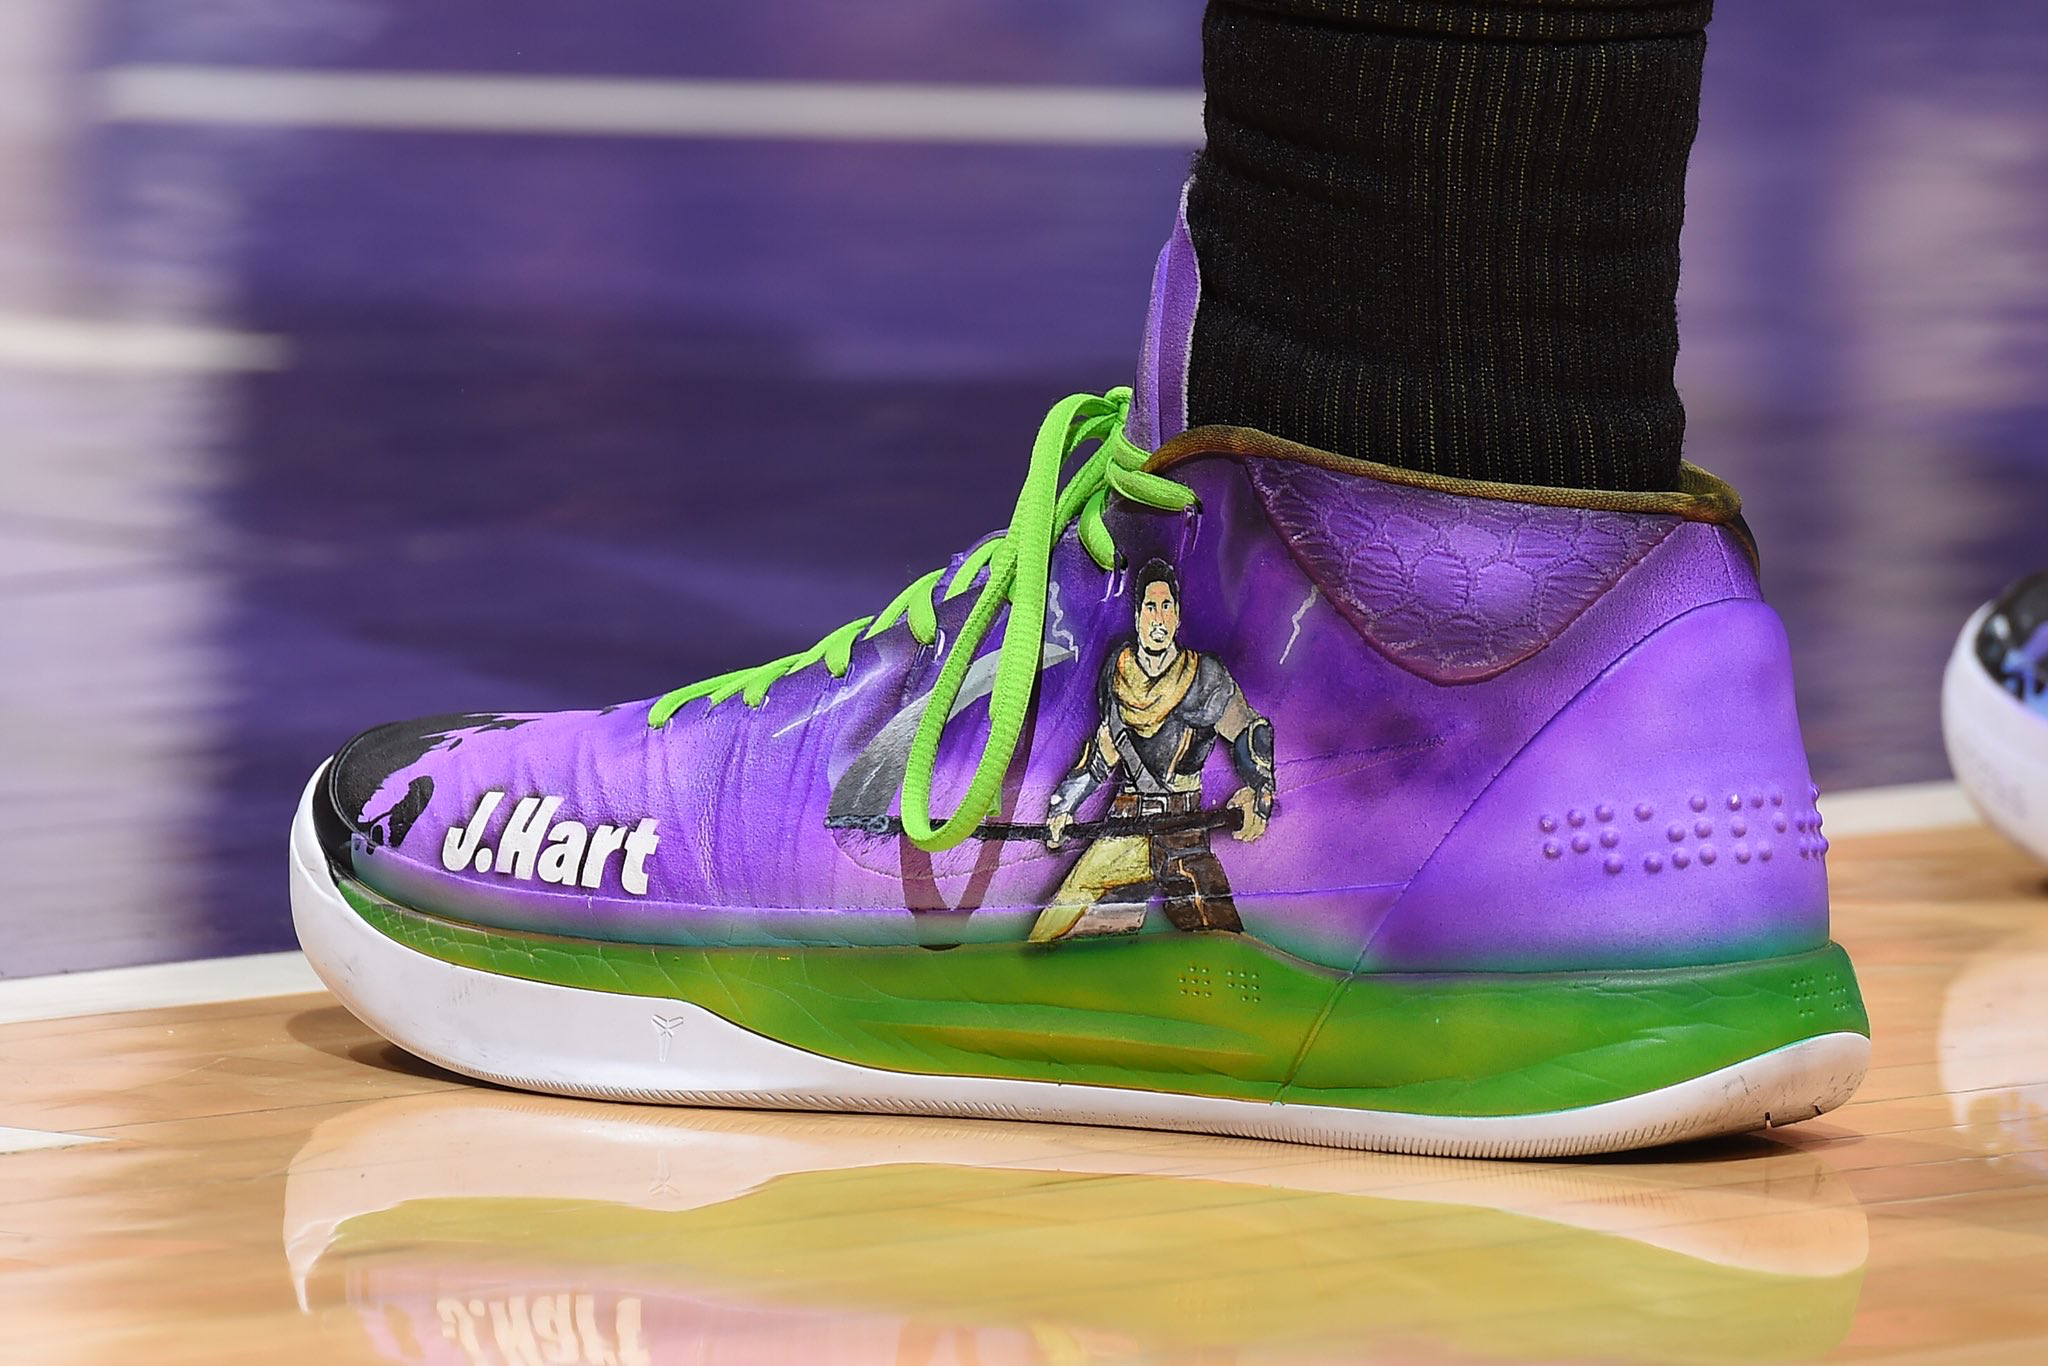 ec1553ec2dfa Fortnite custom Nike Kobe A.D. for  joshhart by  Kickstradomis  LakeShow